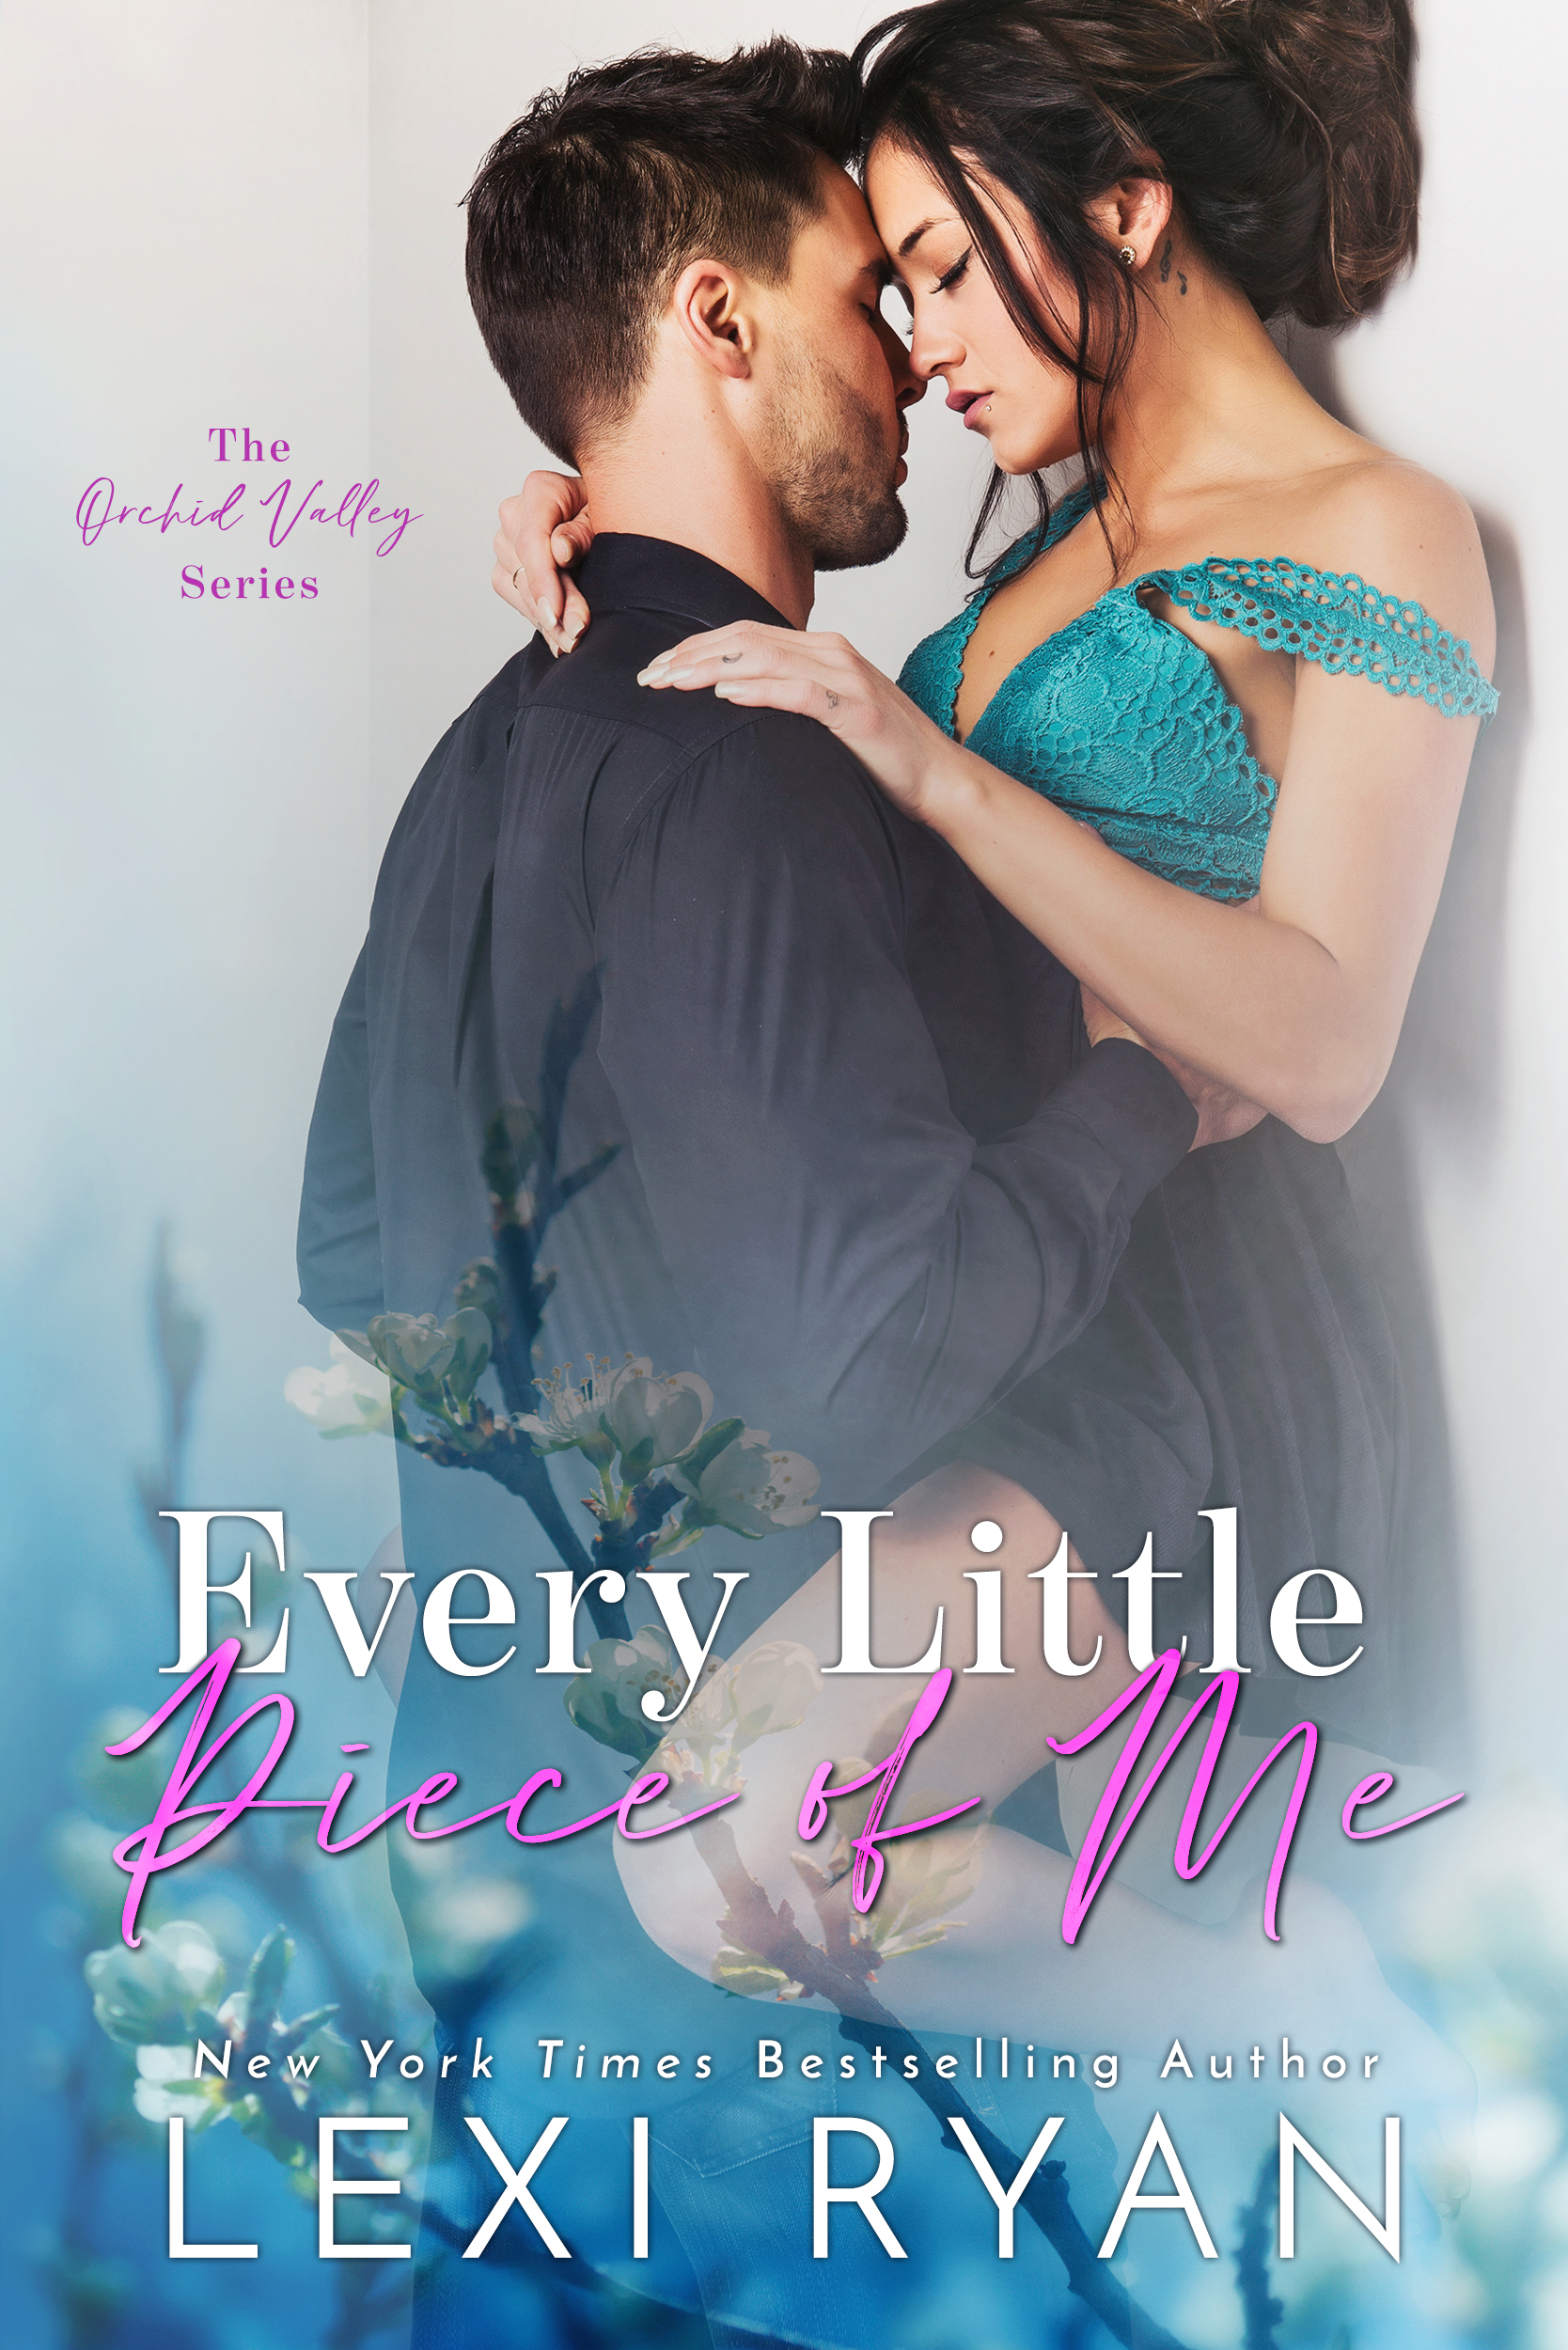 Every Little Piece of Me (Orchid Valley Bo - Lexi Ryan